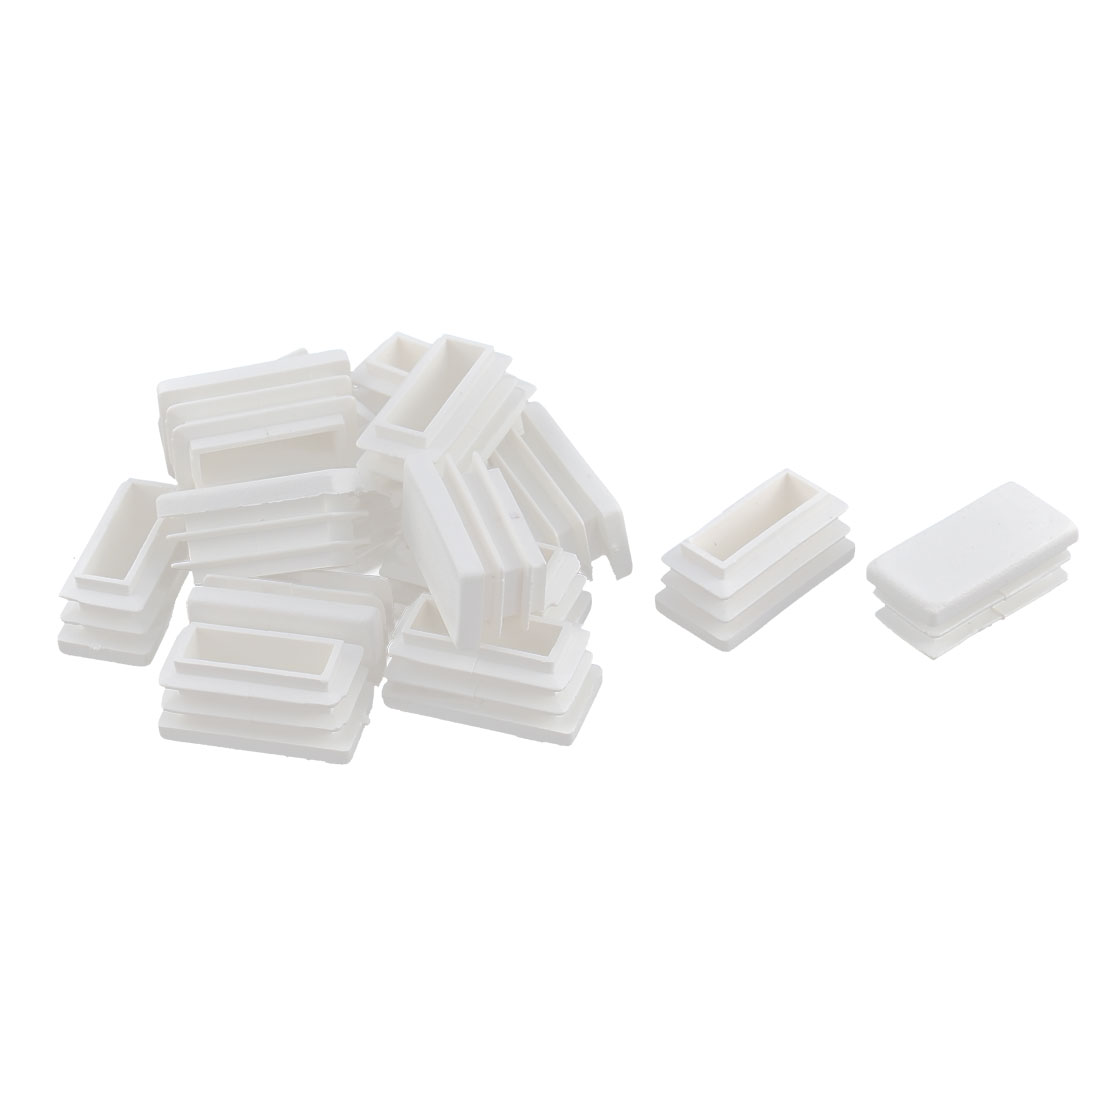 Chair Table Legs Box Section Plastic Rectangle Tube Inserts White 16pcs